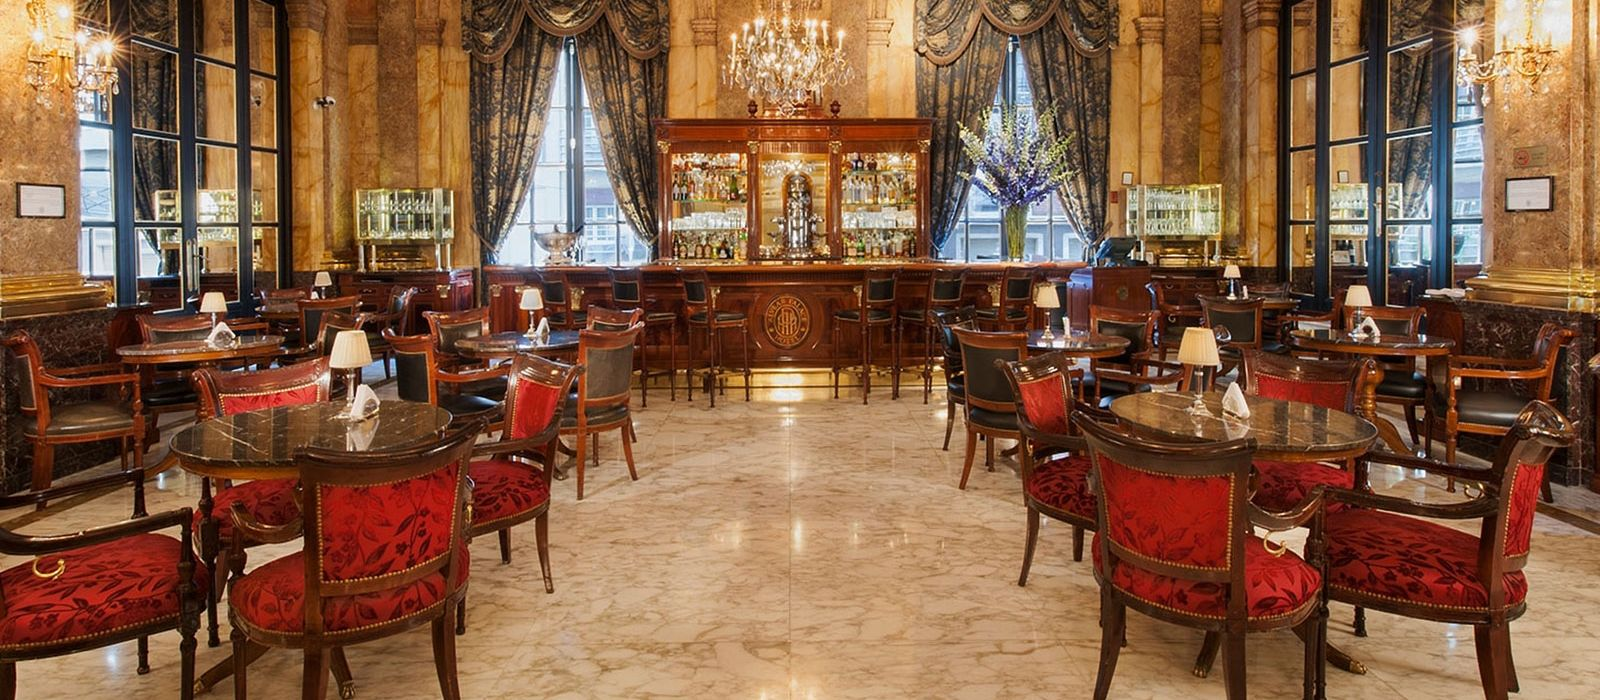 Hotel Alvear Palace Argentinien